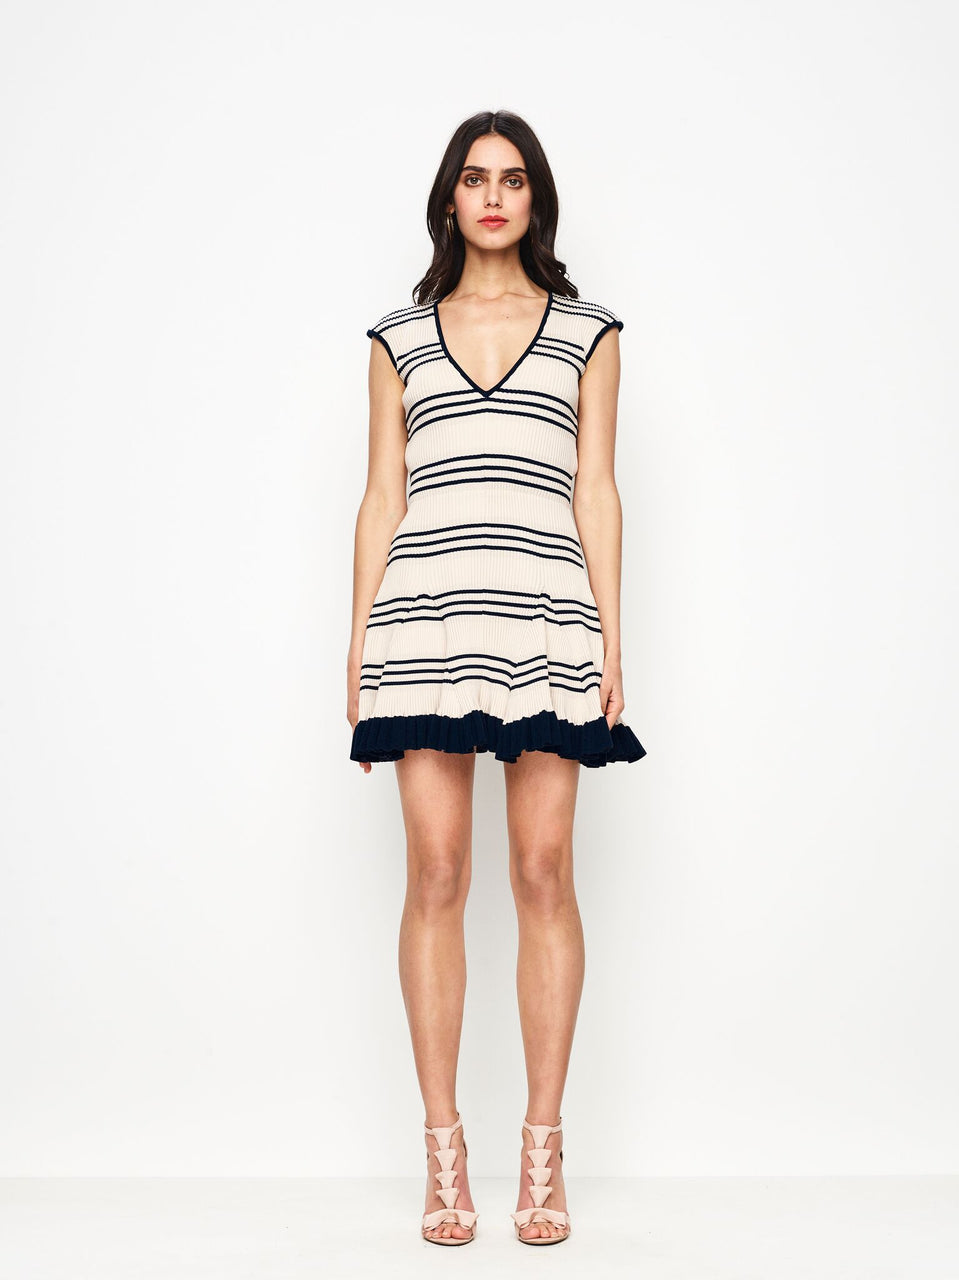 Alice McCall Frenchie Dress - Nude & Ink